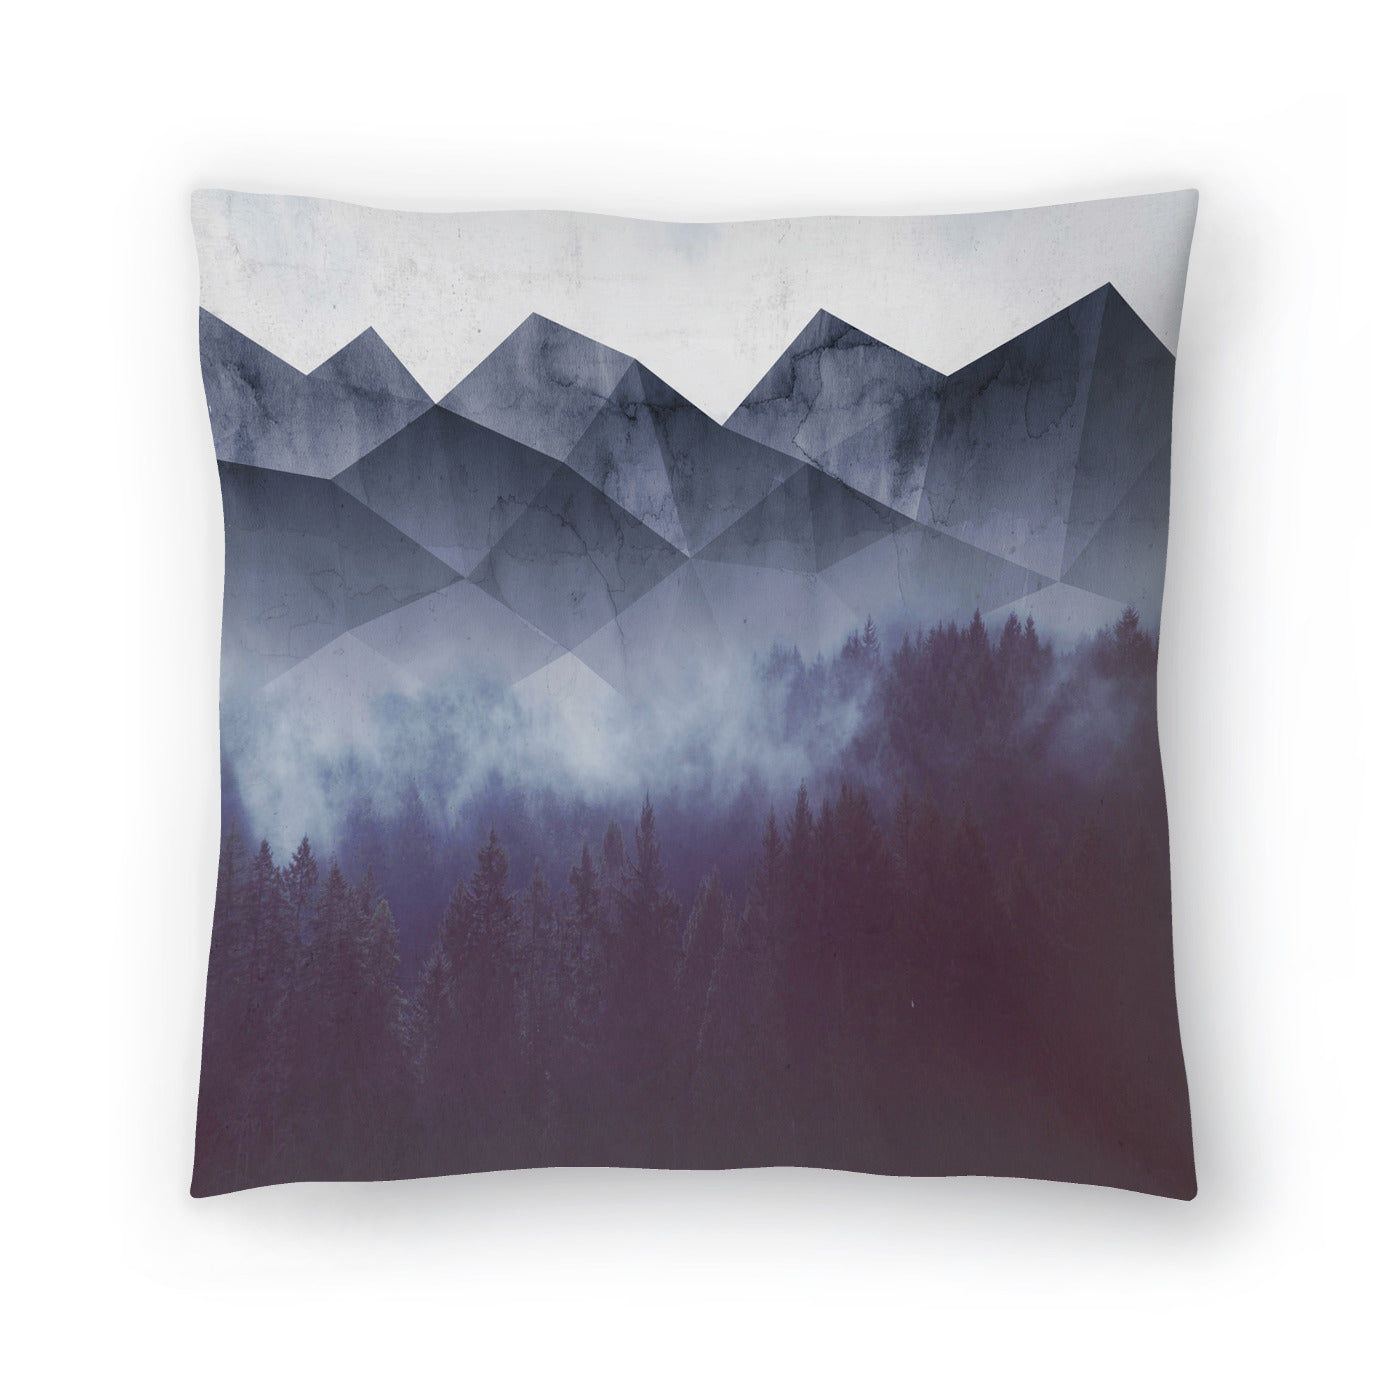 Winter Glory by Emanuela Carratoni Decorative Pillow - Decorative Pillow - Americanflat